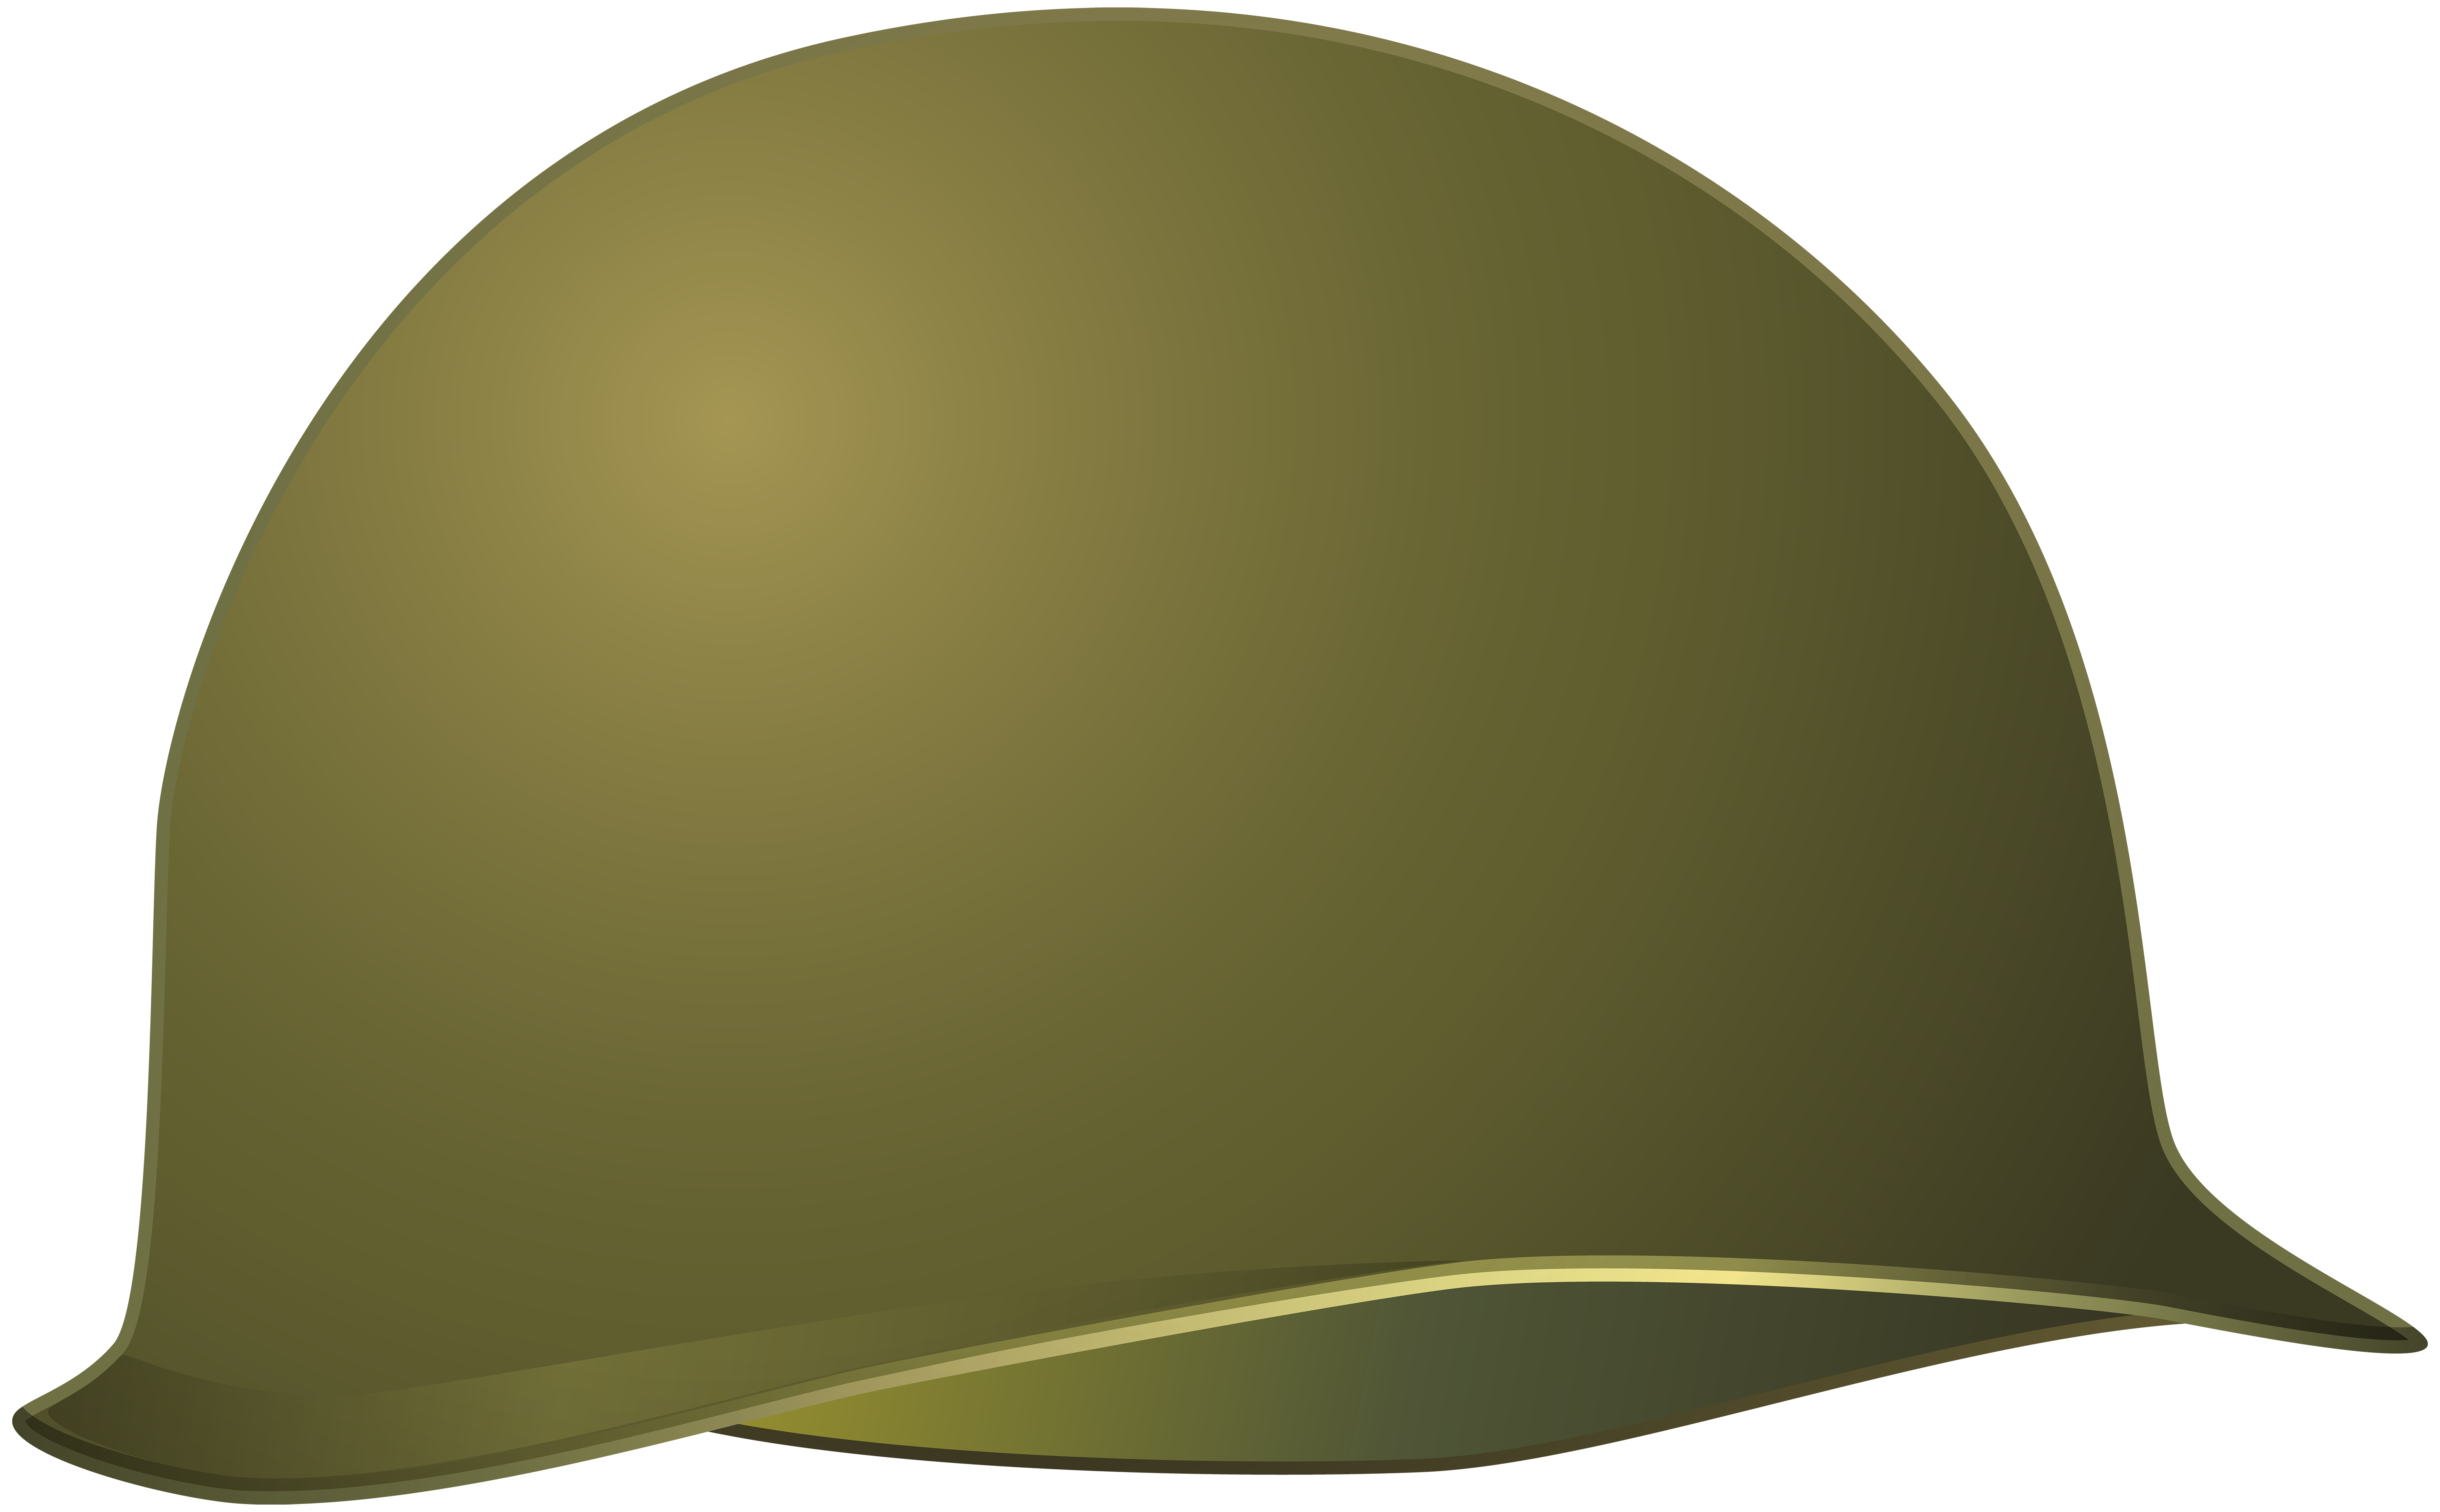 Free Military Png - Military Helmet PNG Clip Art Image | Gallery Yopriceville - High ...